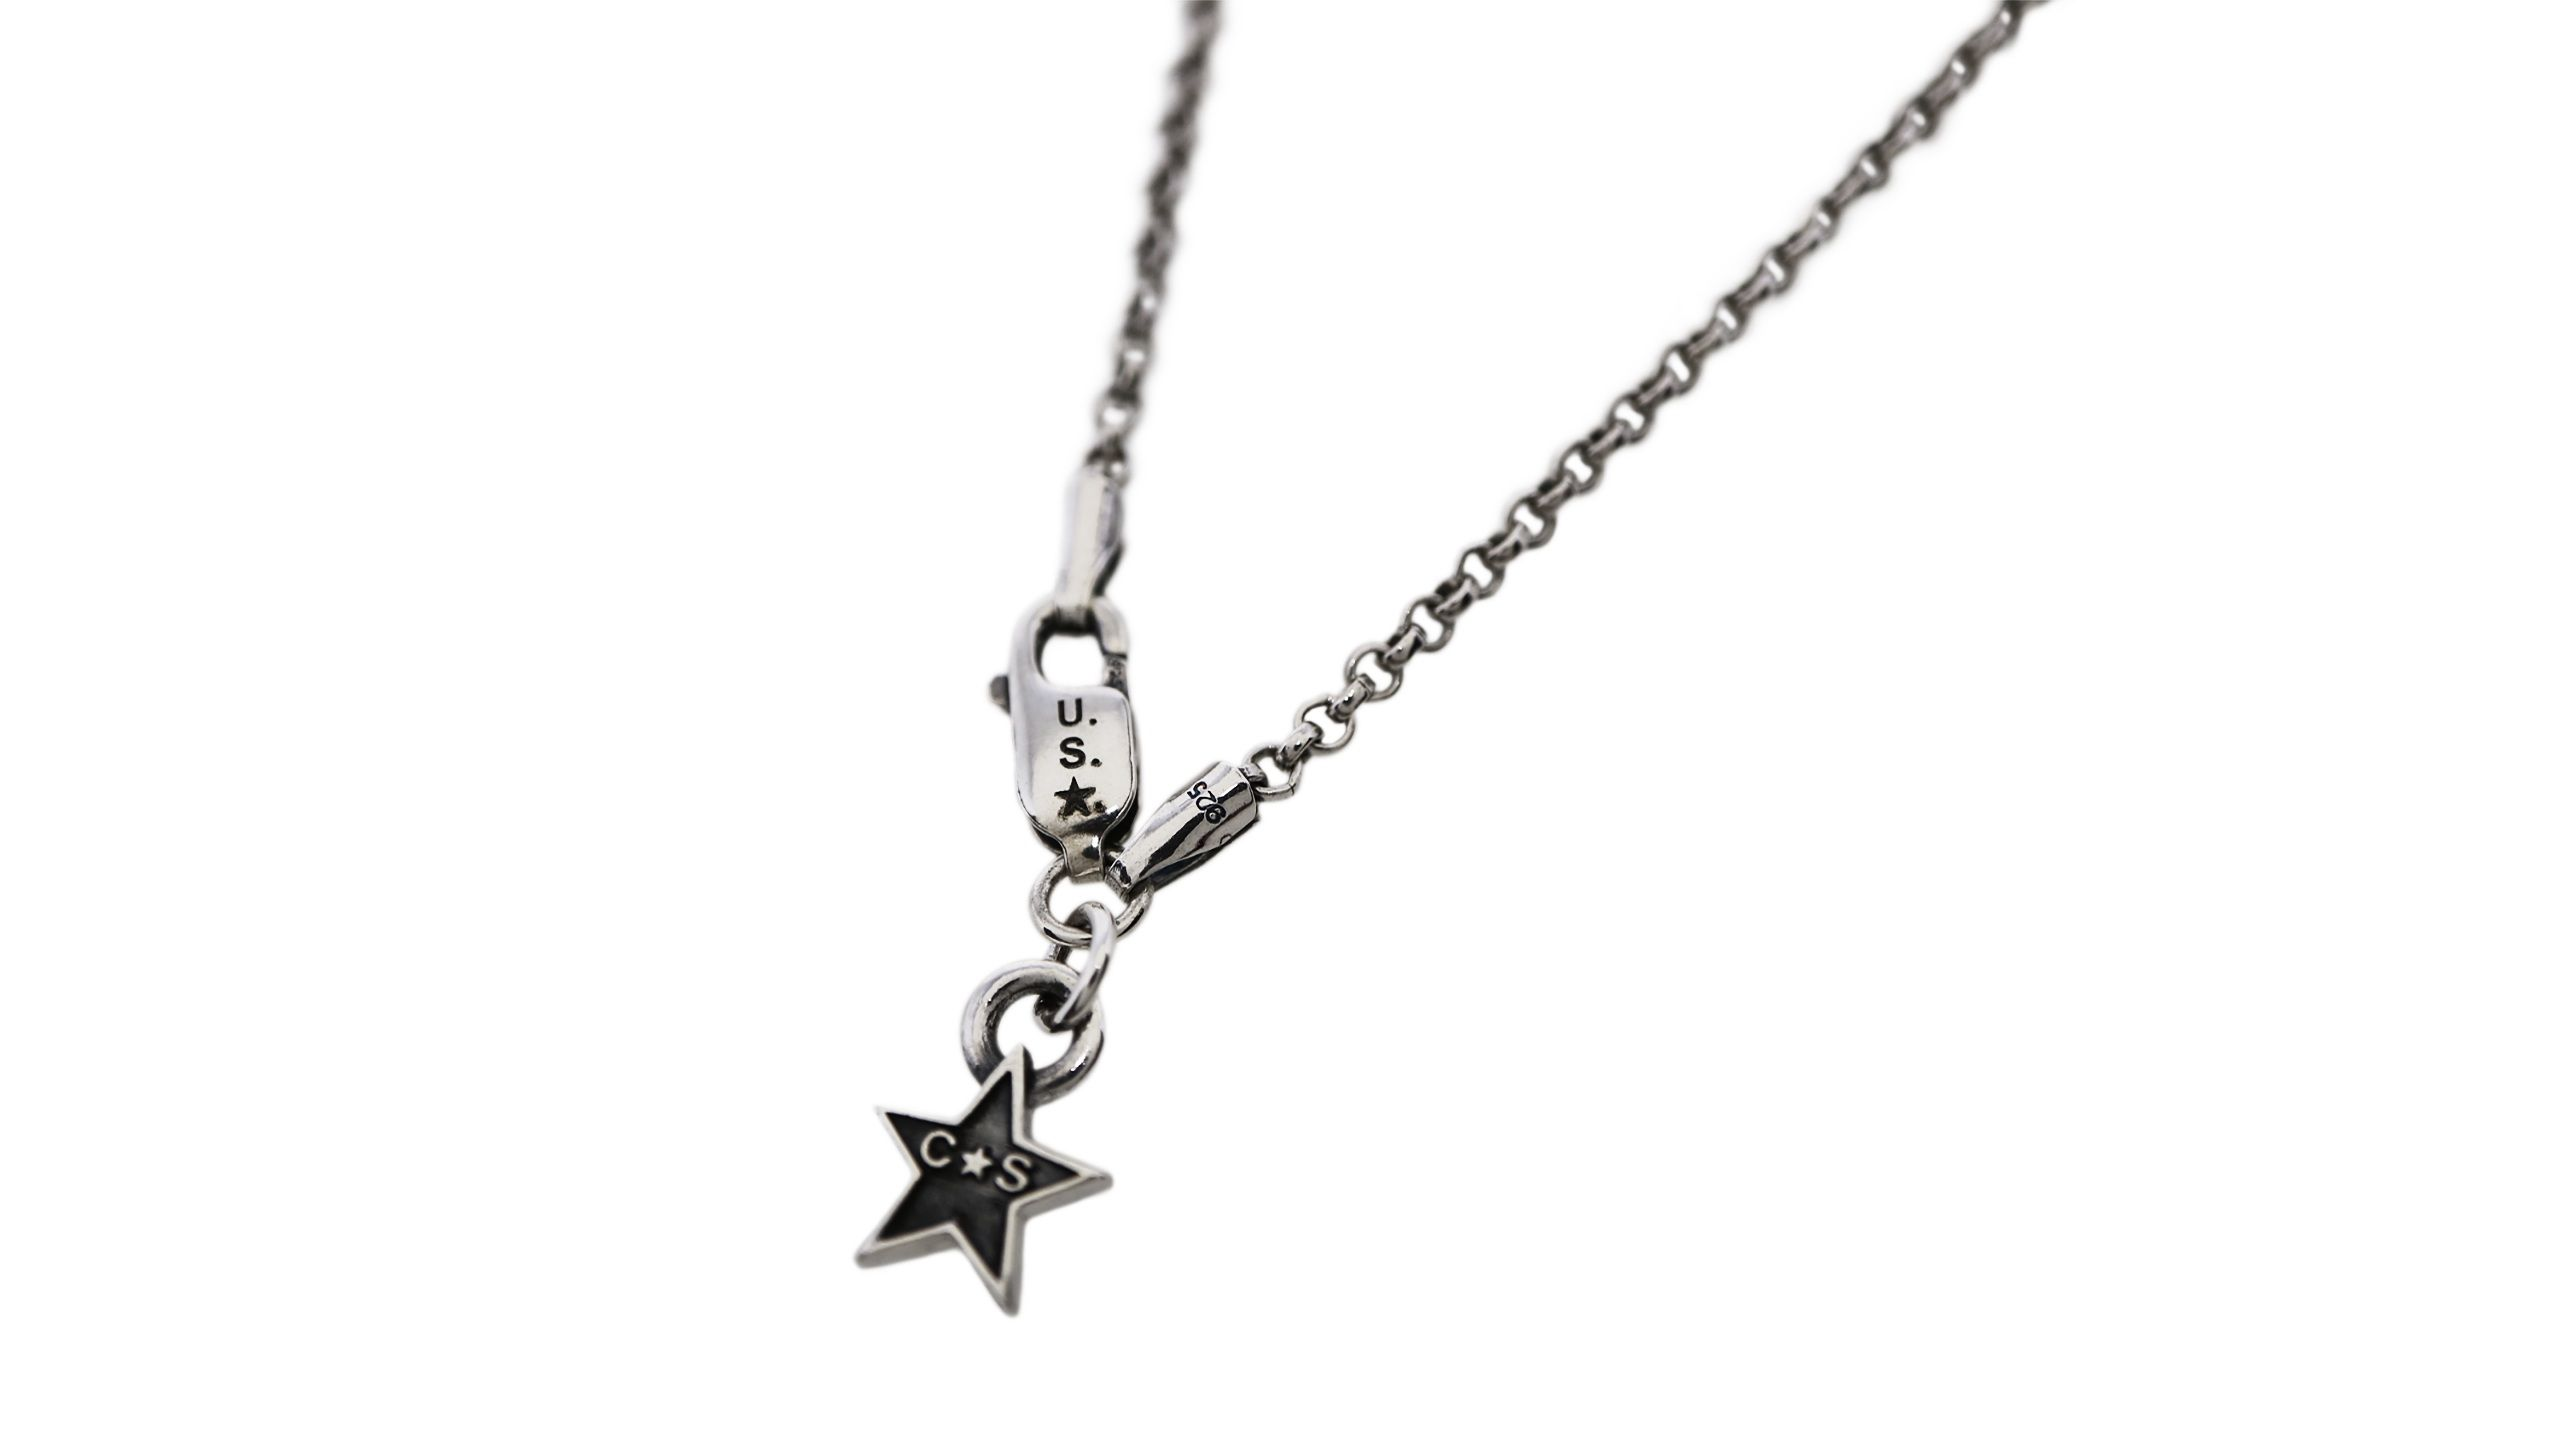 CS TINY STAR LOGO CHAIN (24 inch)